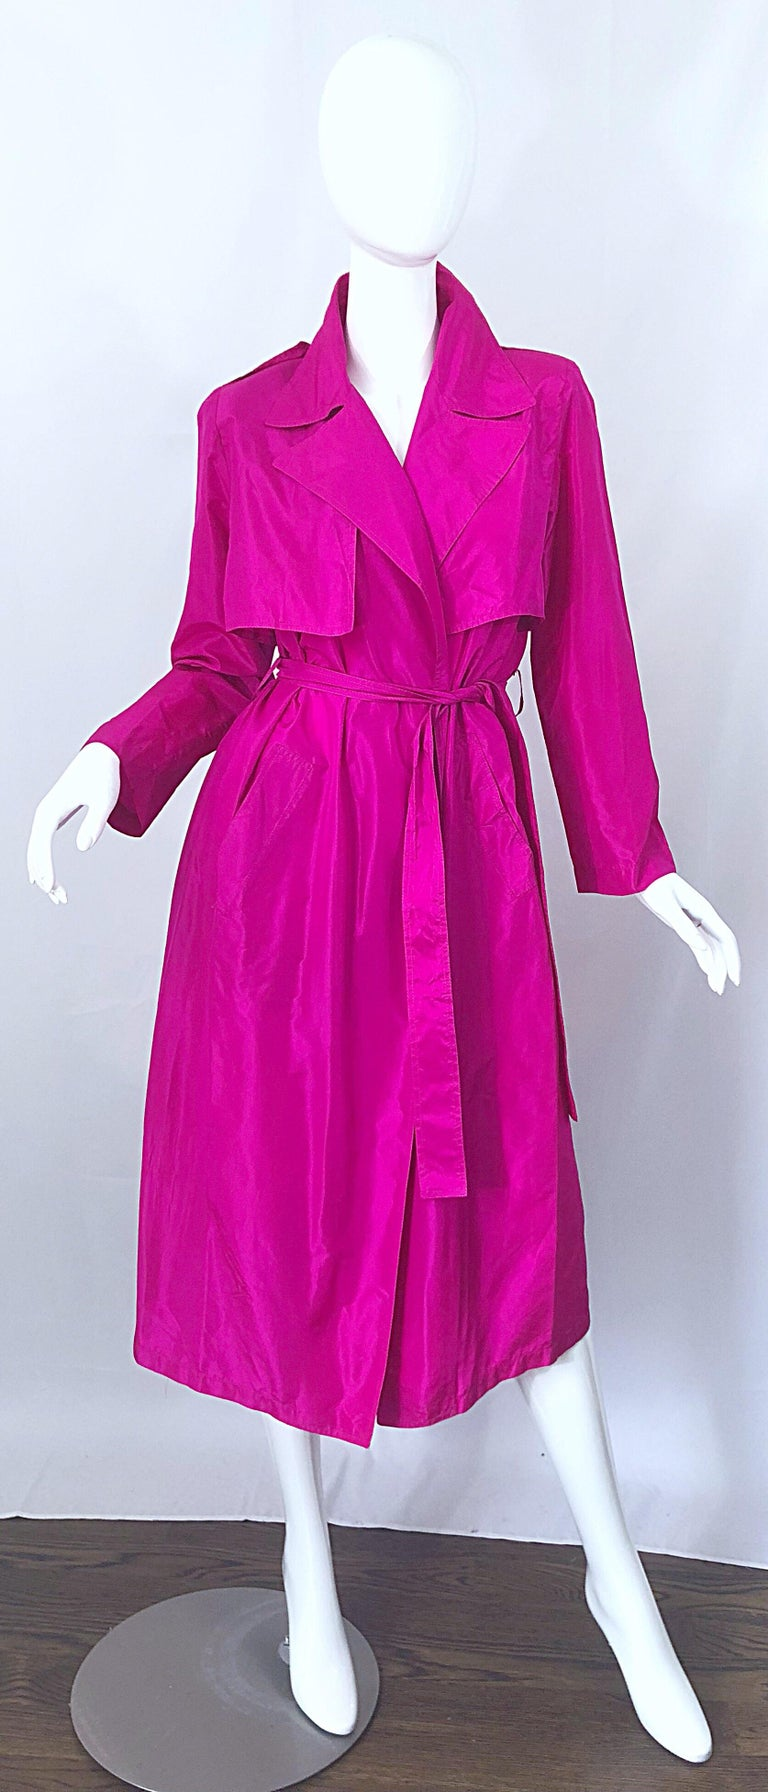 Vintage Vicky Tiel Couture 80s Hot Pink Fuchsia Silk 1980s Trecnch Jacket Dress For Sale 7